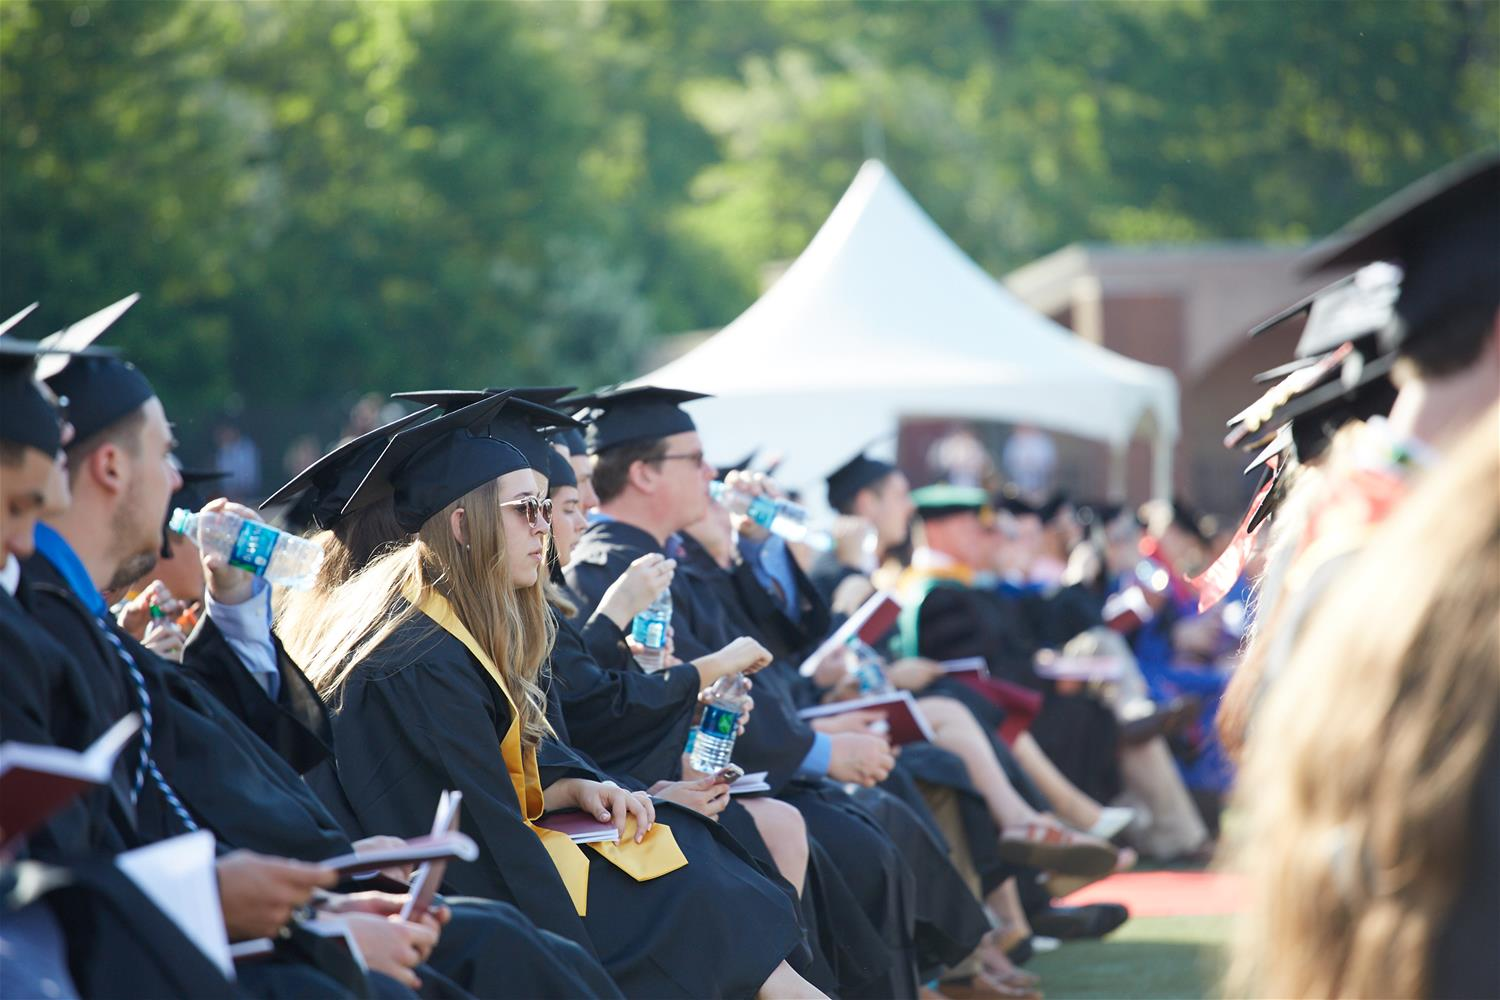 Students listening to Commencement speakers